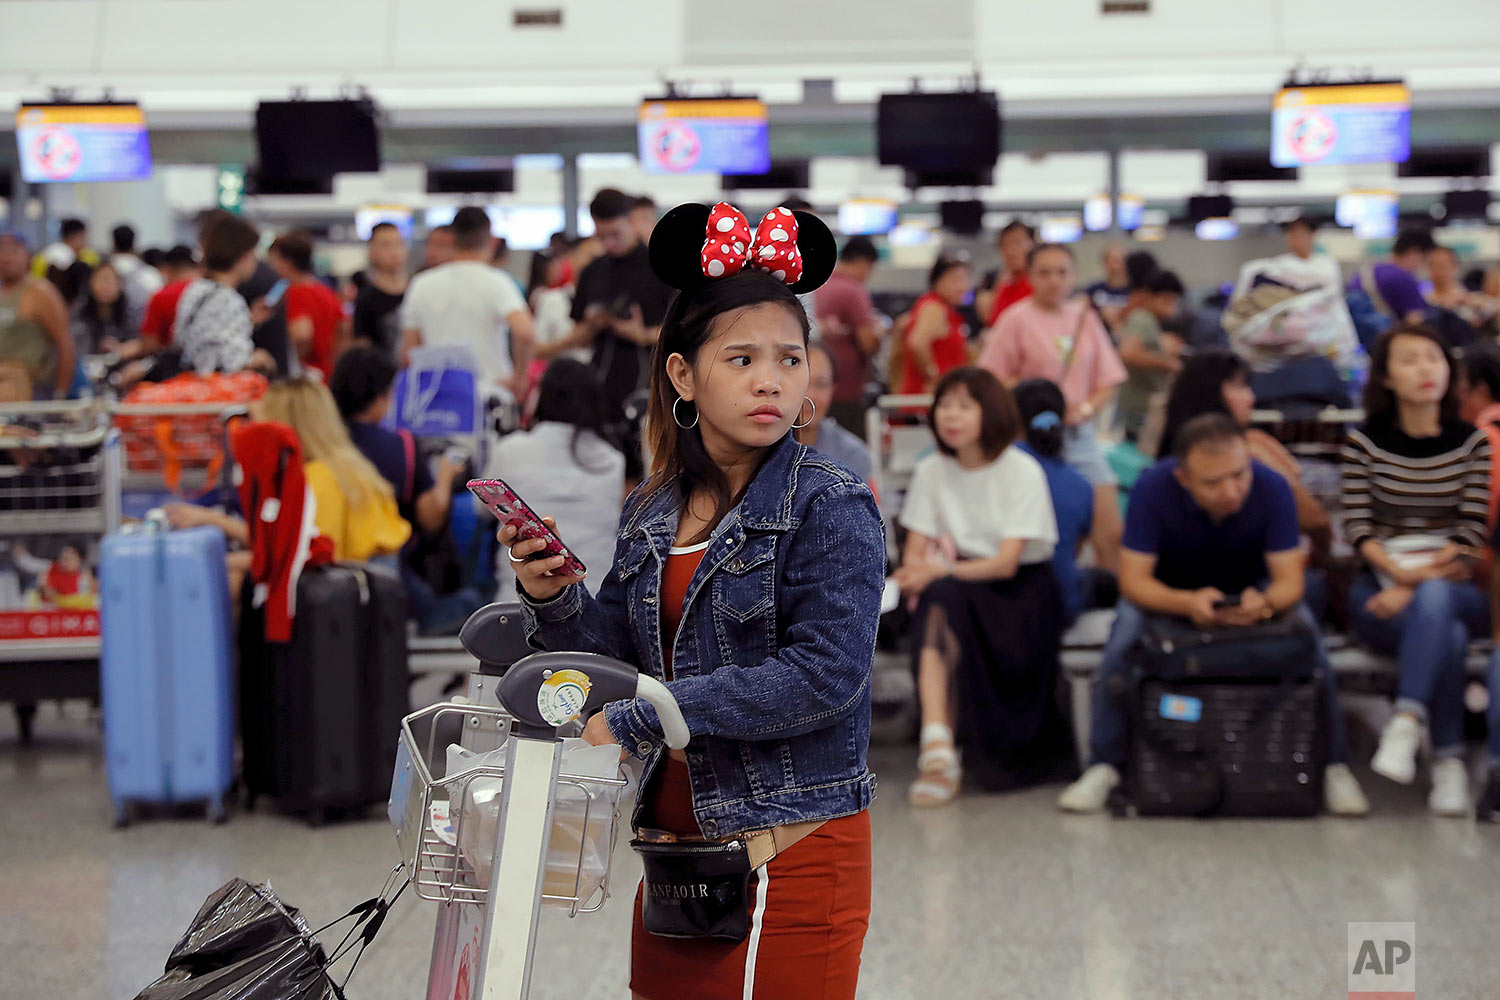 A woman wearing Minnie Mouse headgear looks on as stranded travelers gather near the closed check-in counters at the Airport in Hong Kong, Tuesday, Aug. 13, 2019. (AP Photo/Kin Cheung)